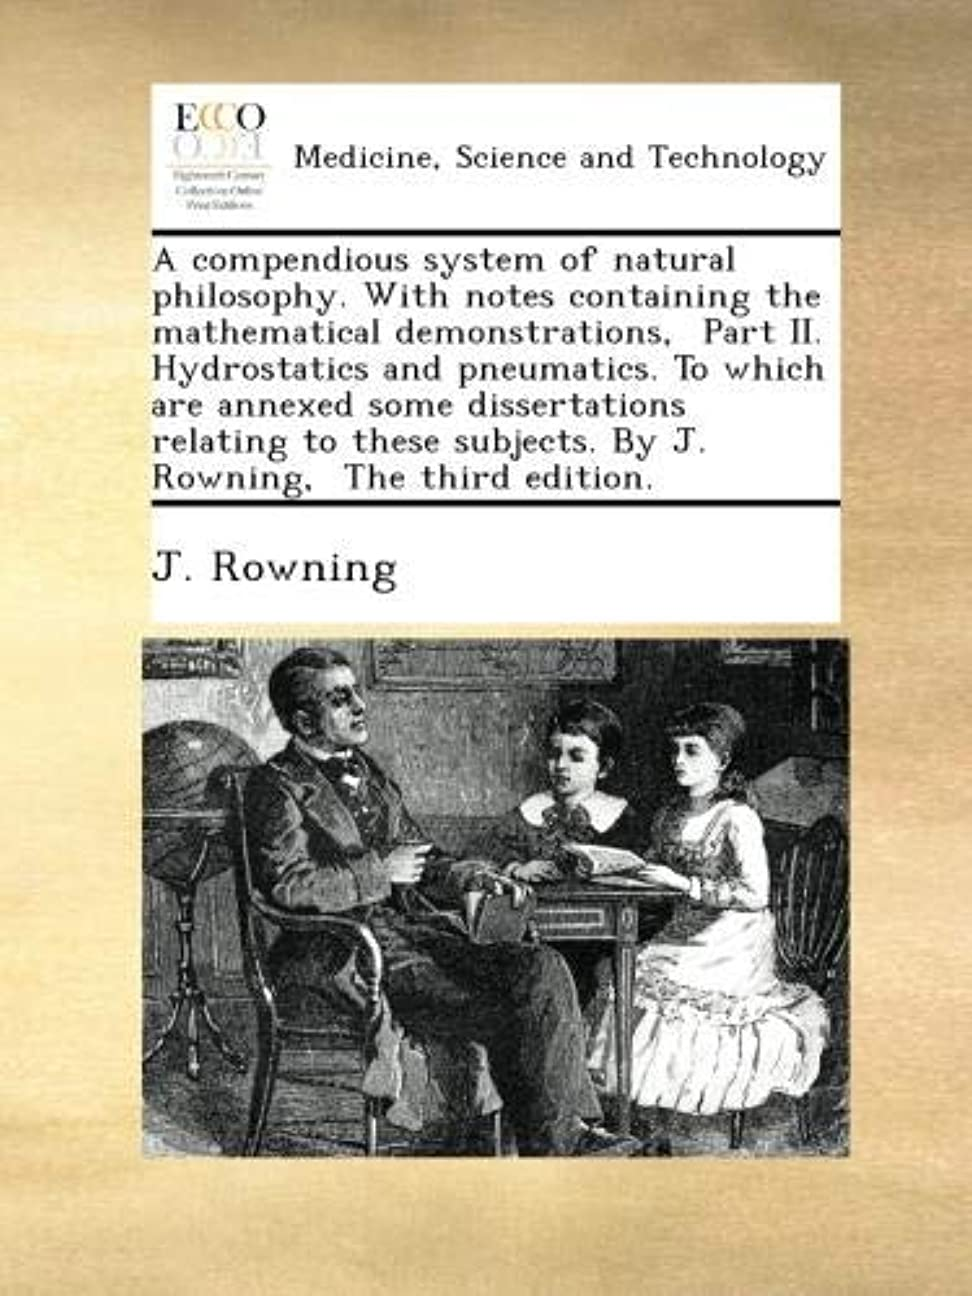 A compendious system of natural philosophy. With notes containing the mathematical demonstrations,  Part II. Hydrostatics and pneumatics. To which are annexed some dissertations relating to these subjects. By J. Rowning,  The third edition.